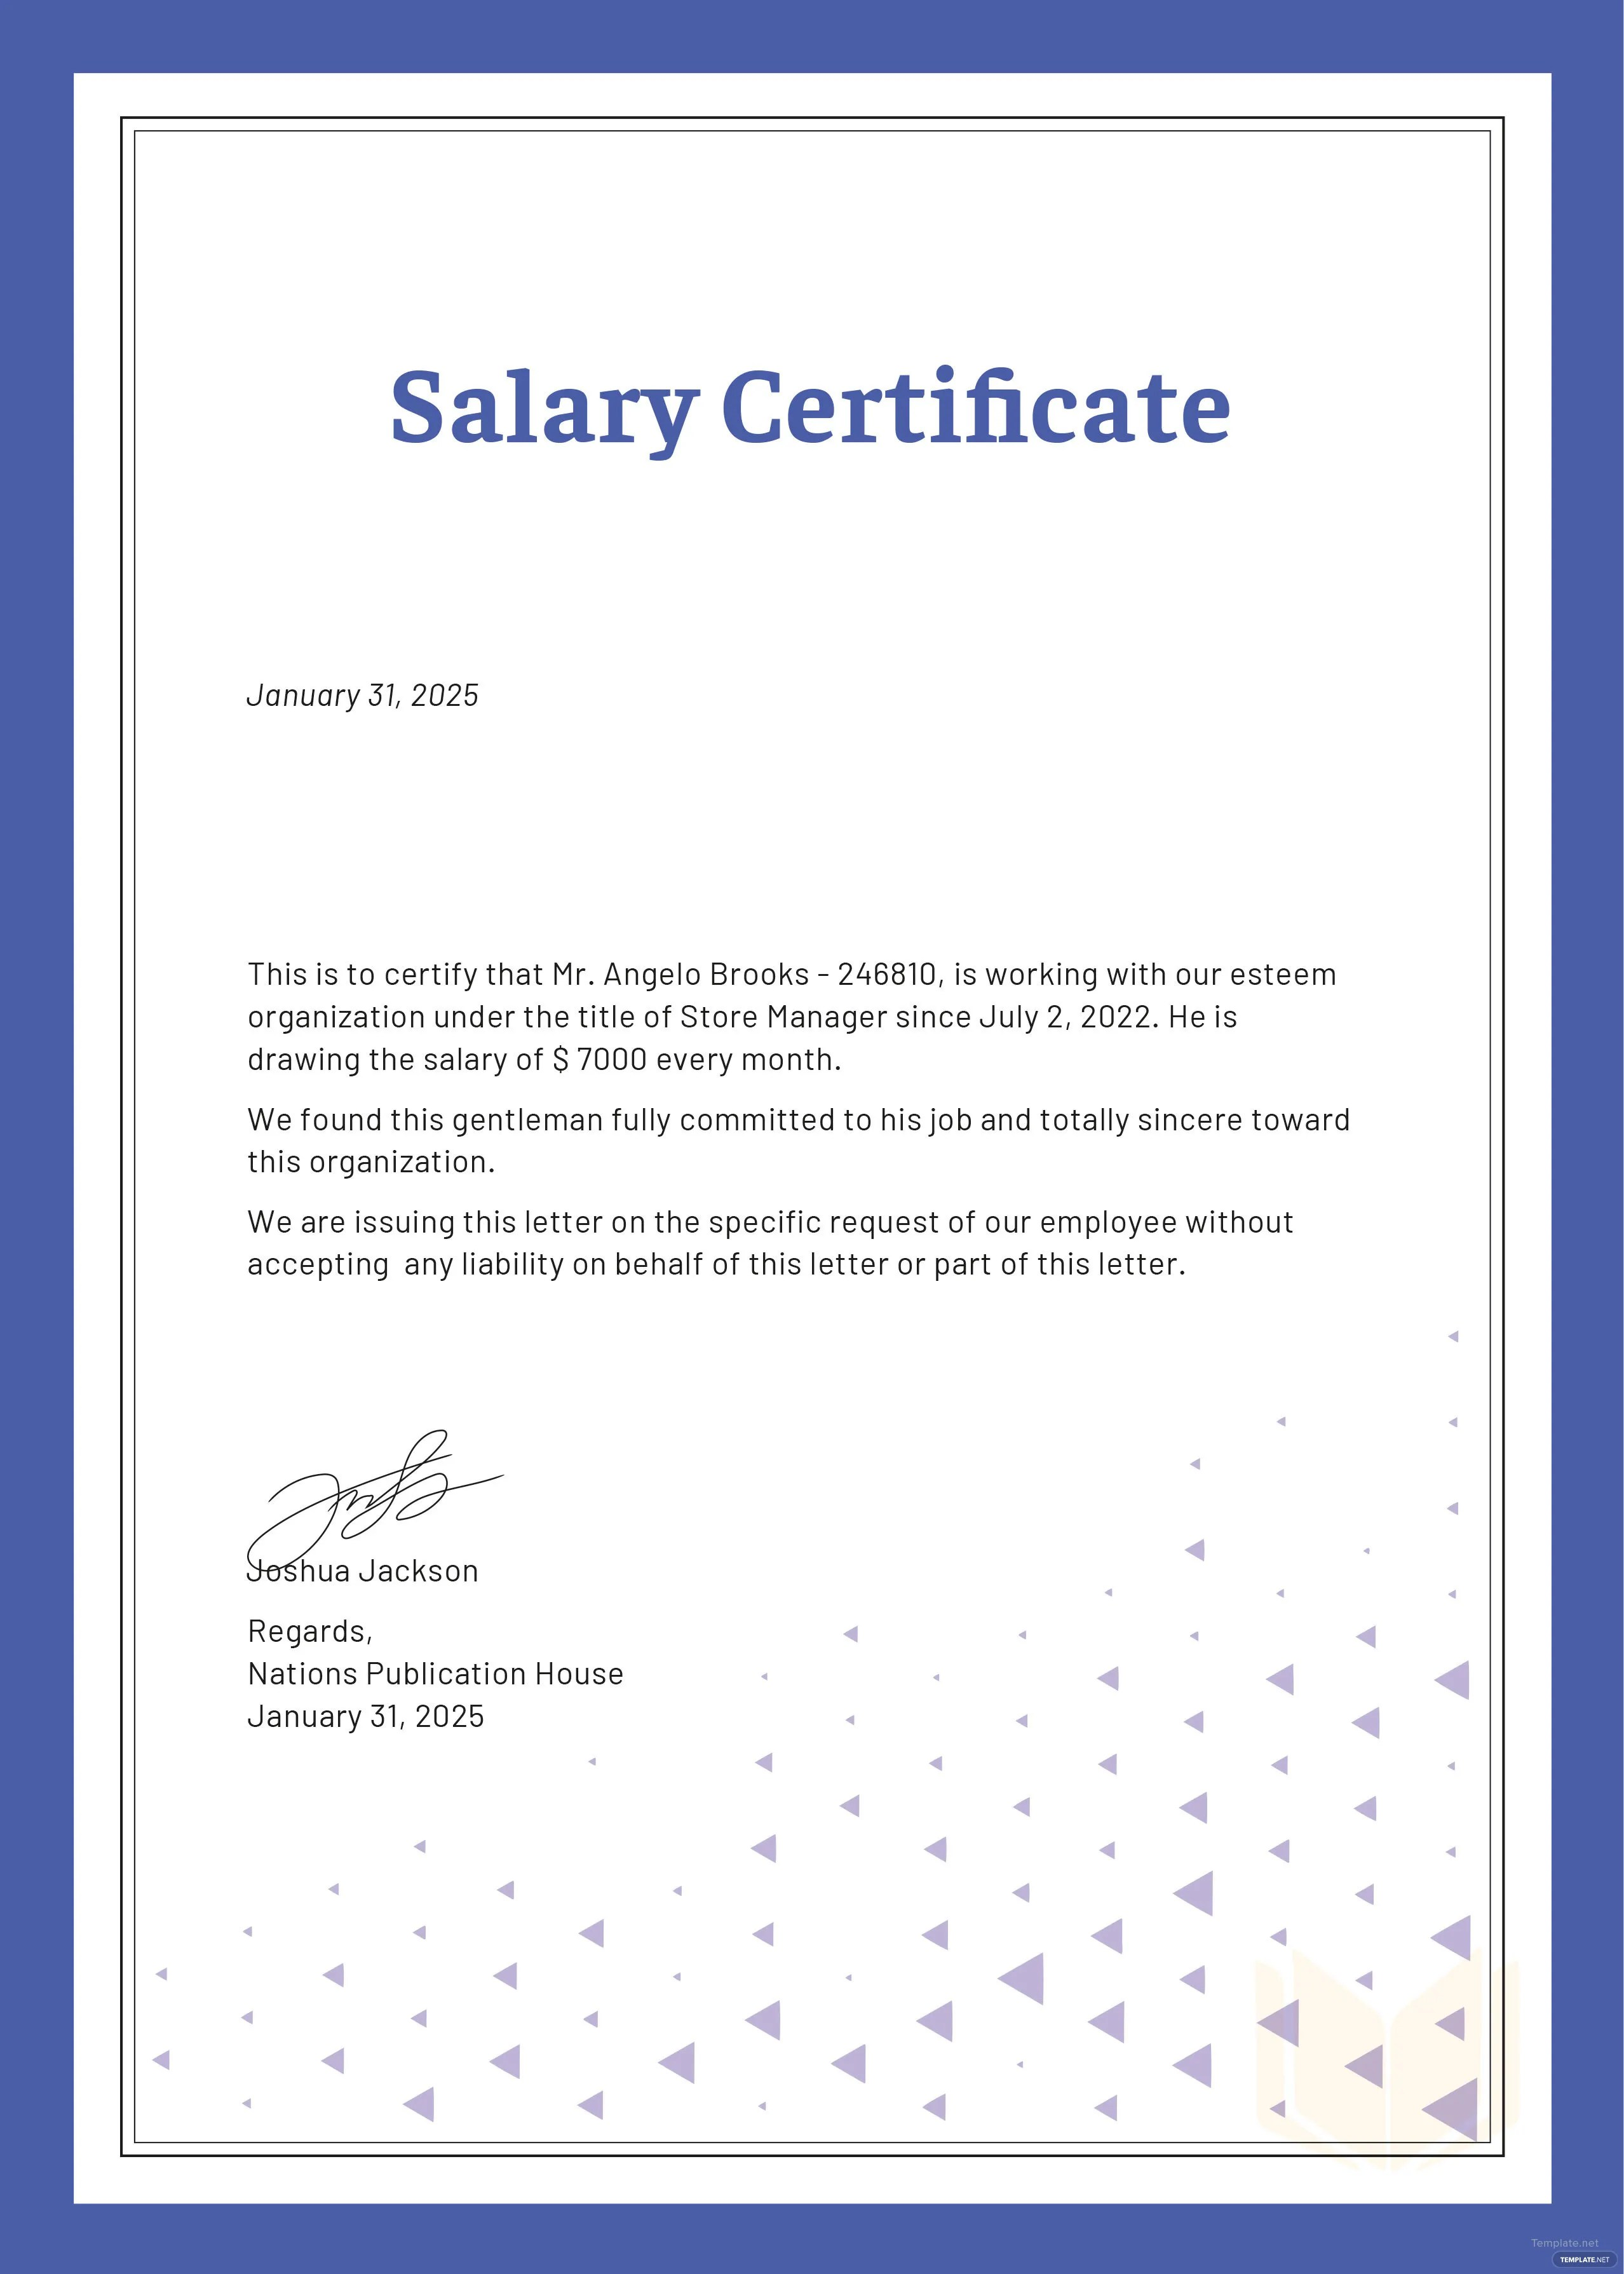 Free Salary Certificate Template In Microsoft Word